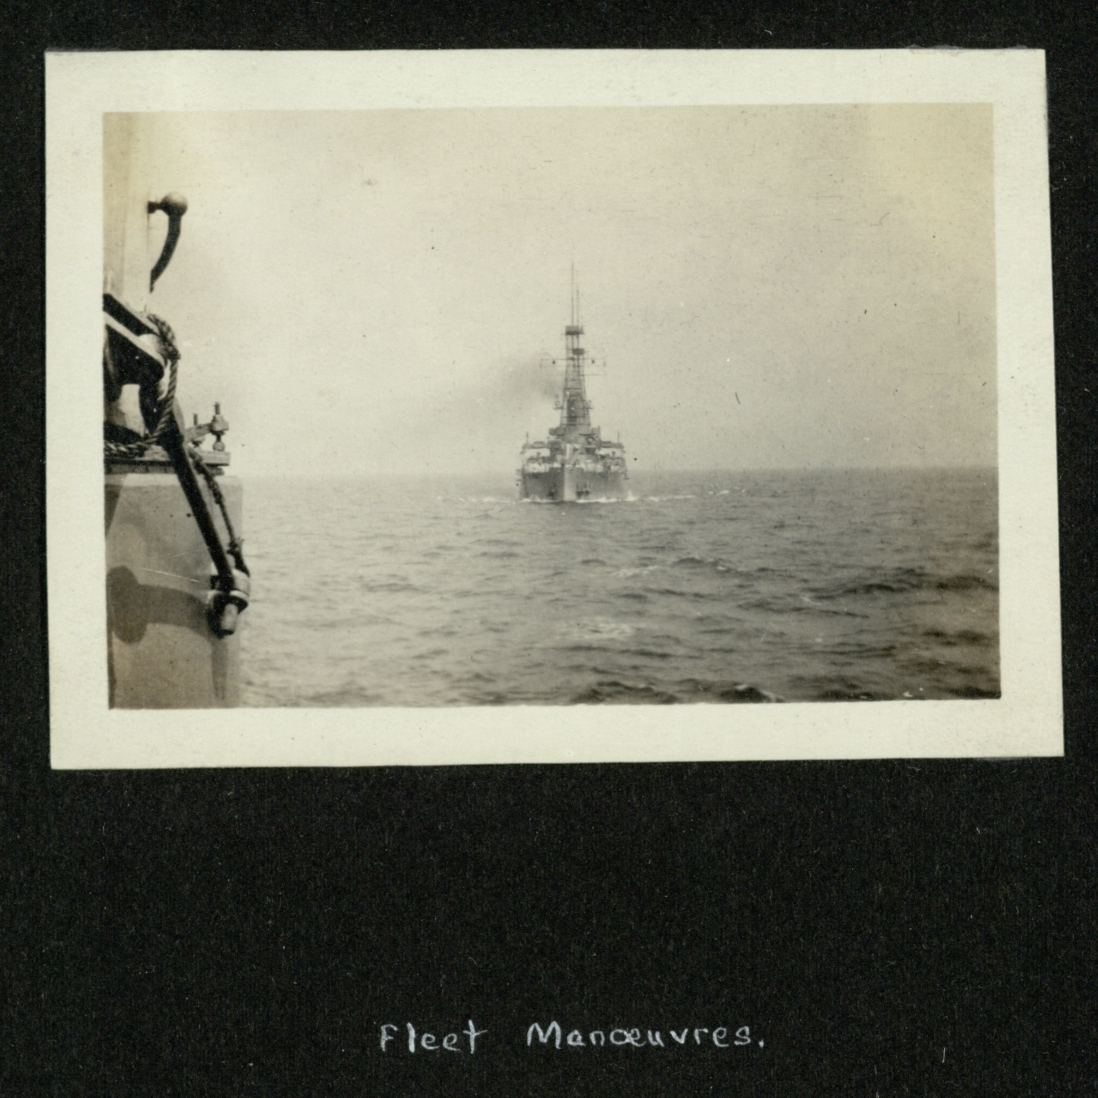 Fleet Manoeuvres. [Image 1]